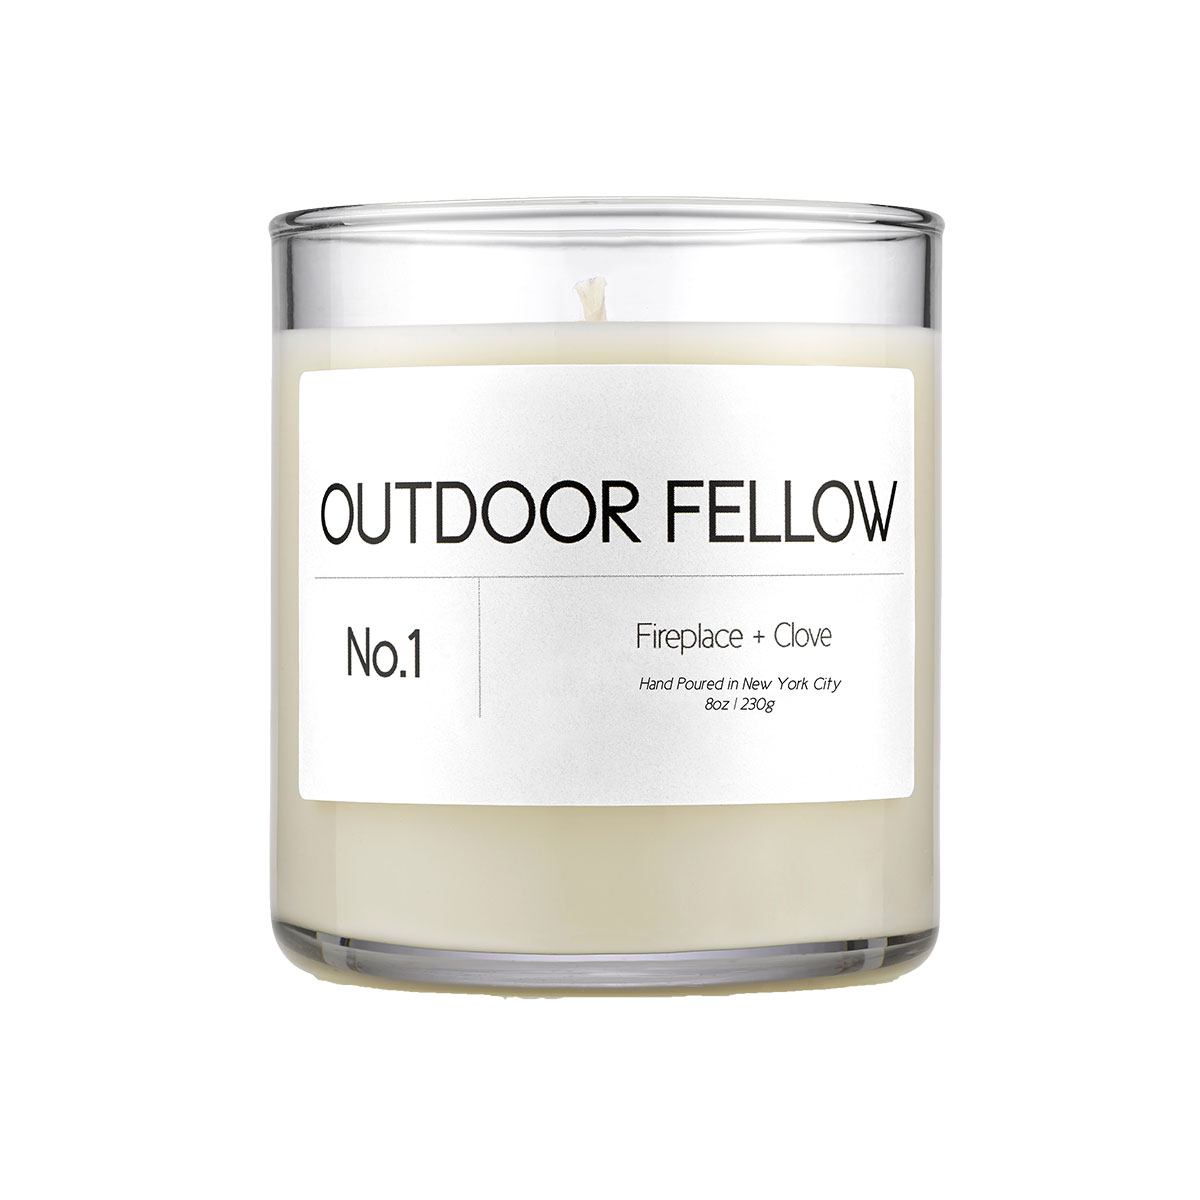 Outdoor Fellow Scented Candle